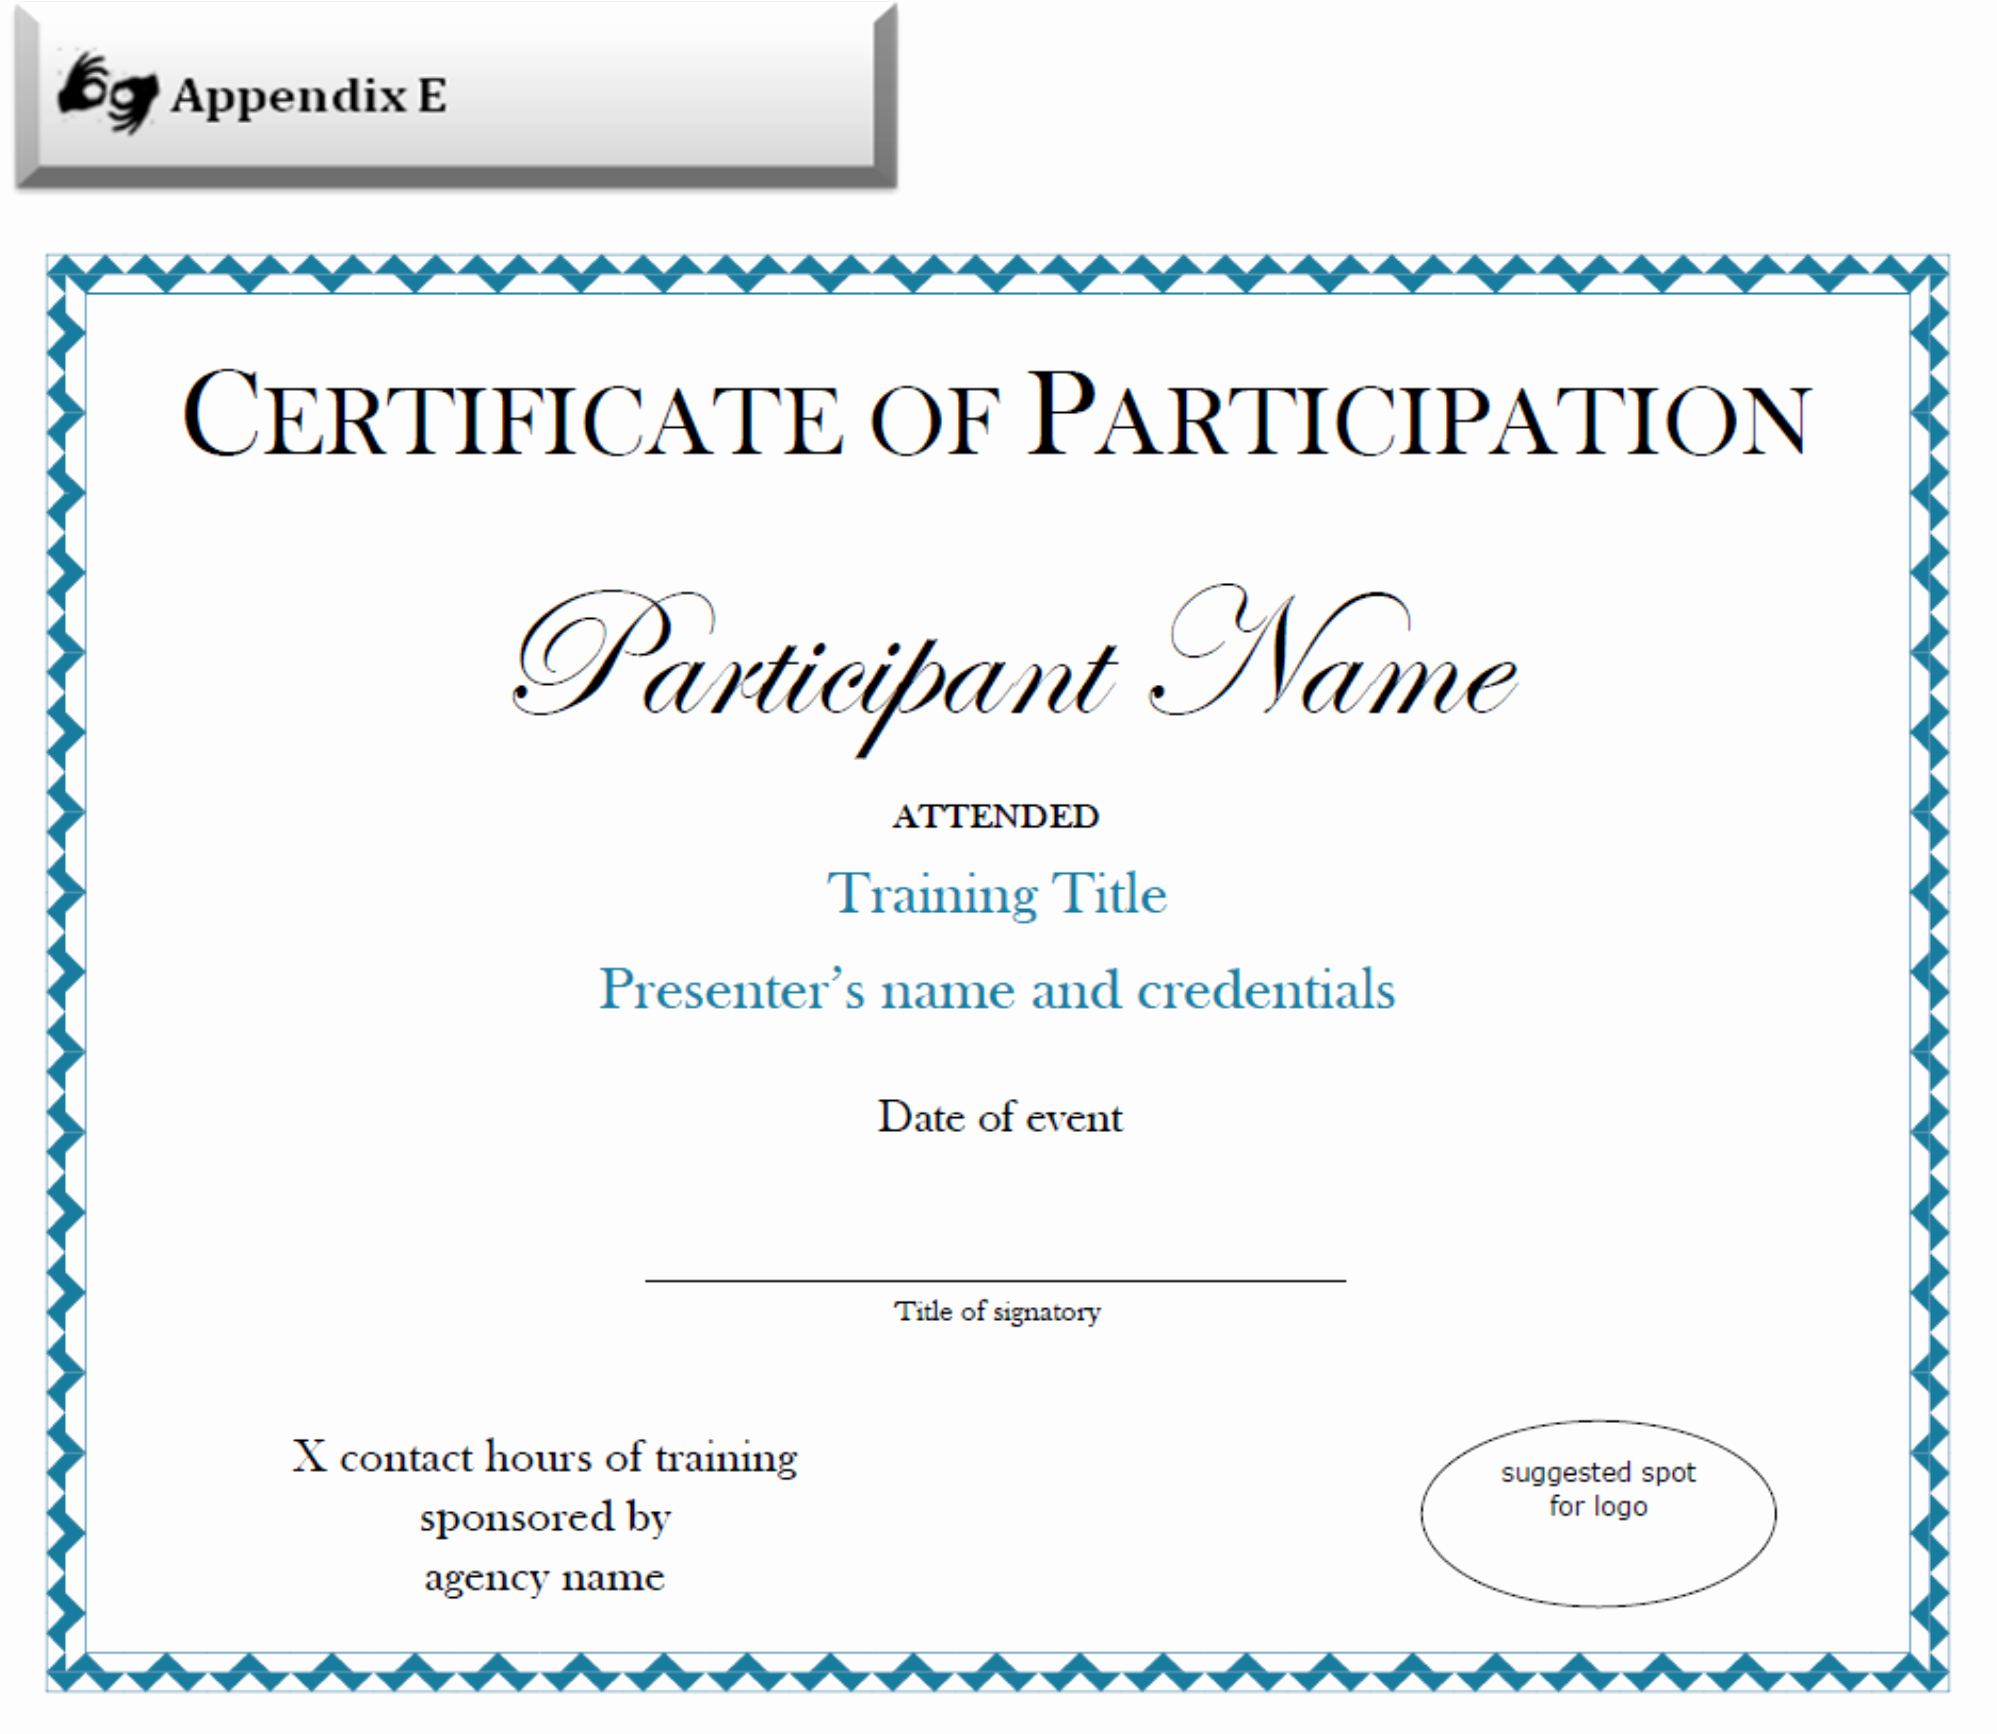 Certificate Of Participation Template Lovely Certificate Of Participation Sample Free Download